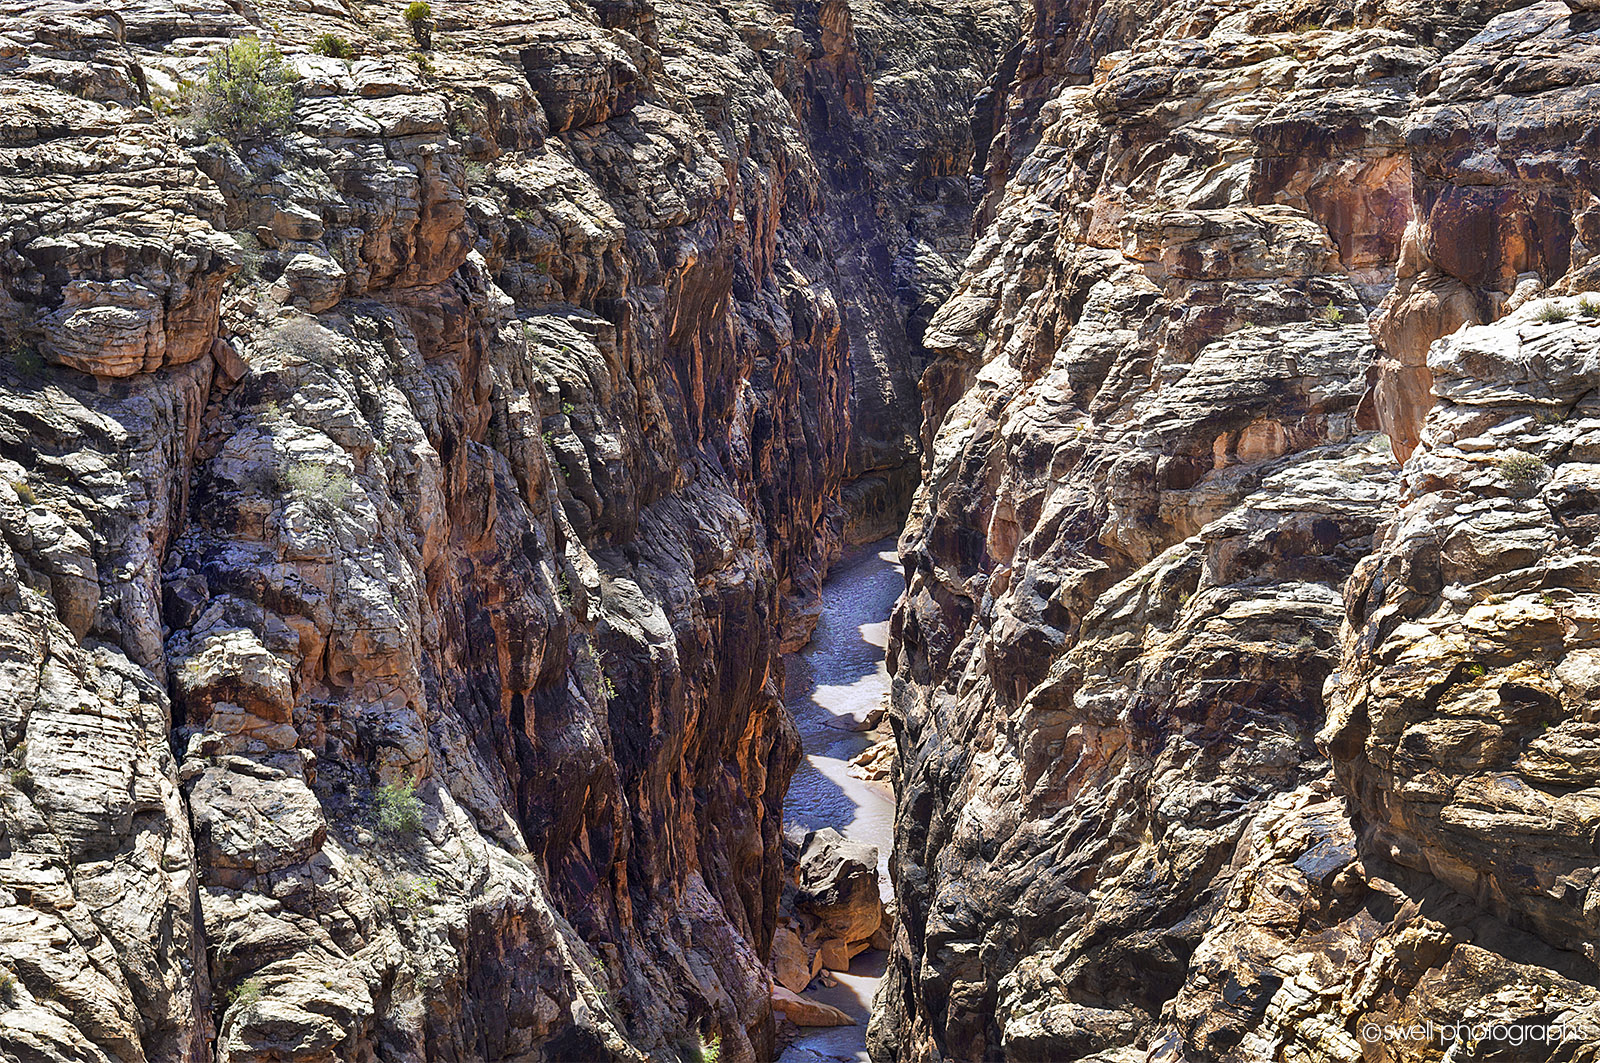 The Black Box Gorge